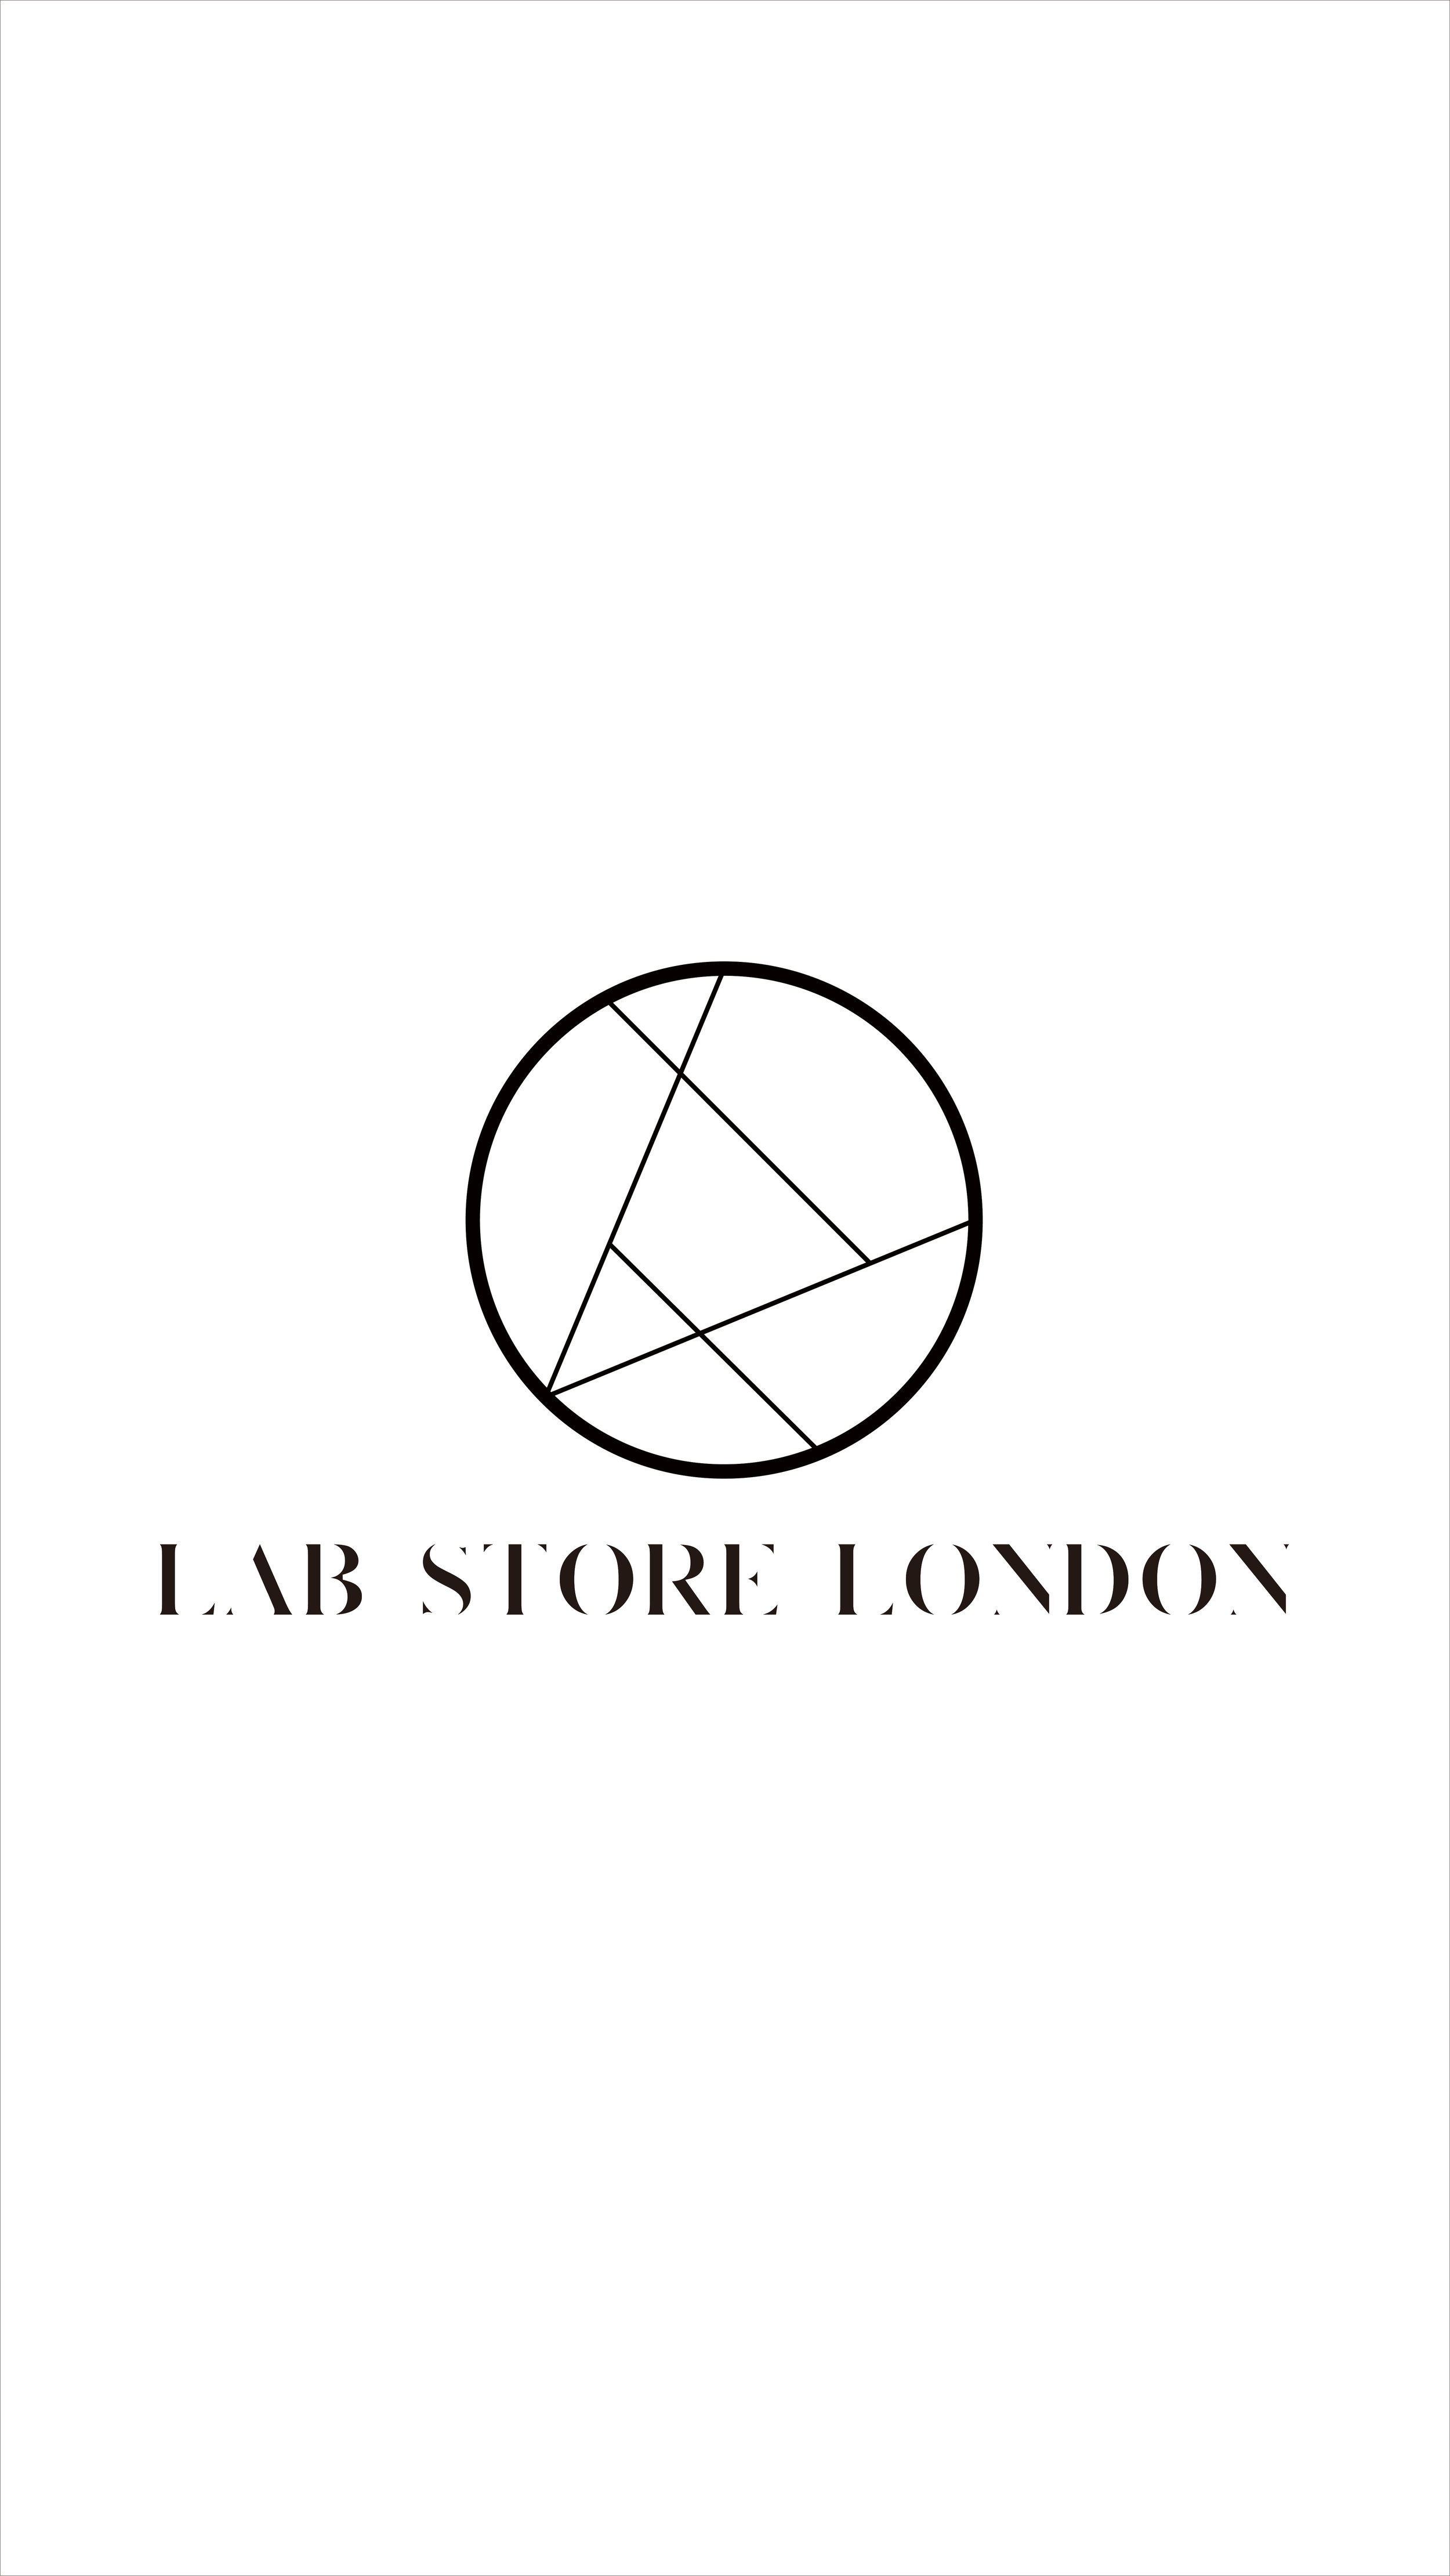 NEW TRADEMARK LAUNCHED